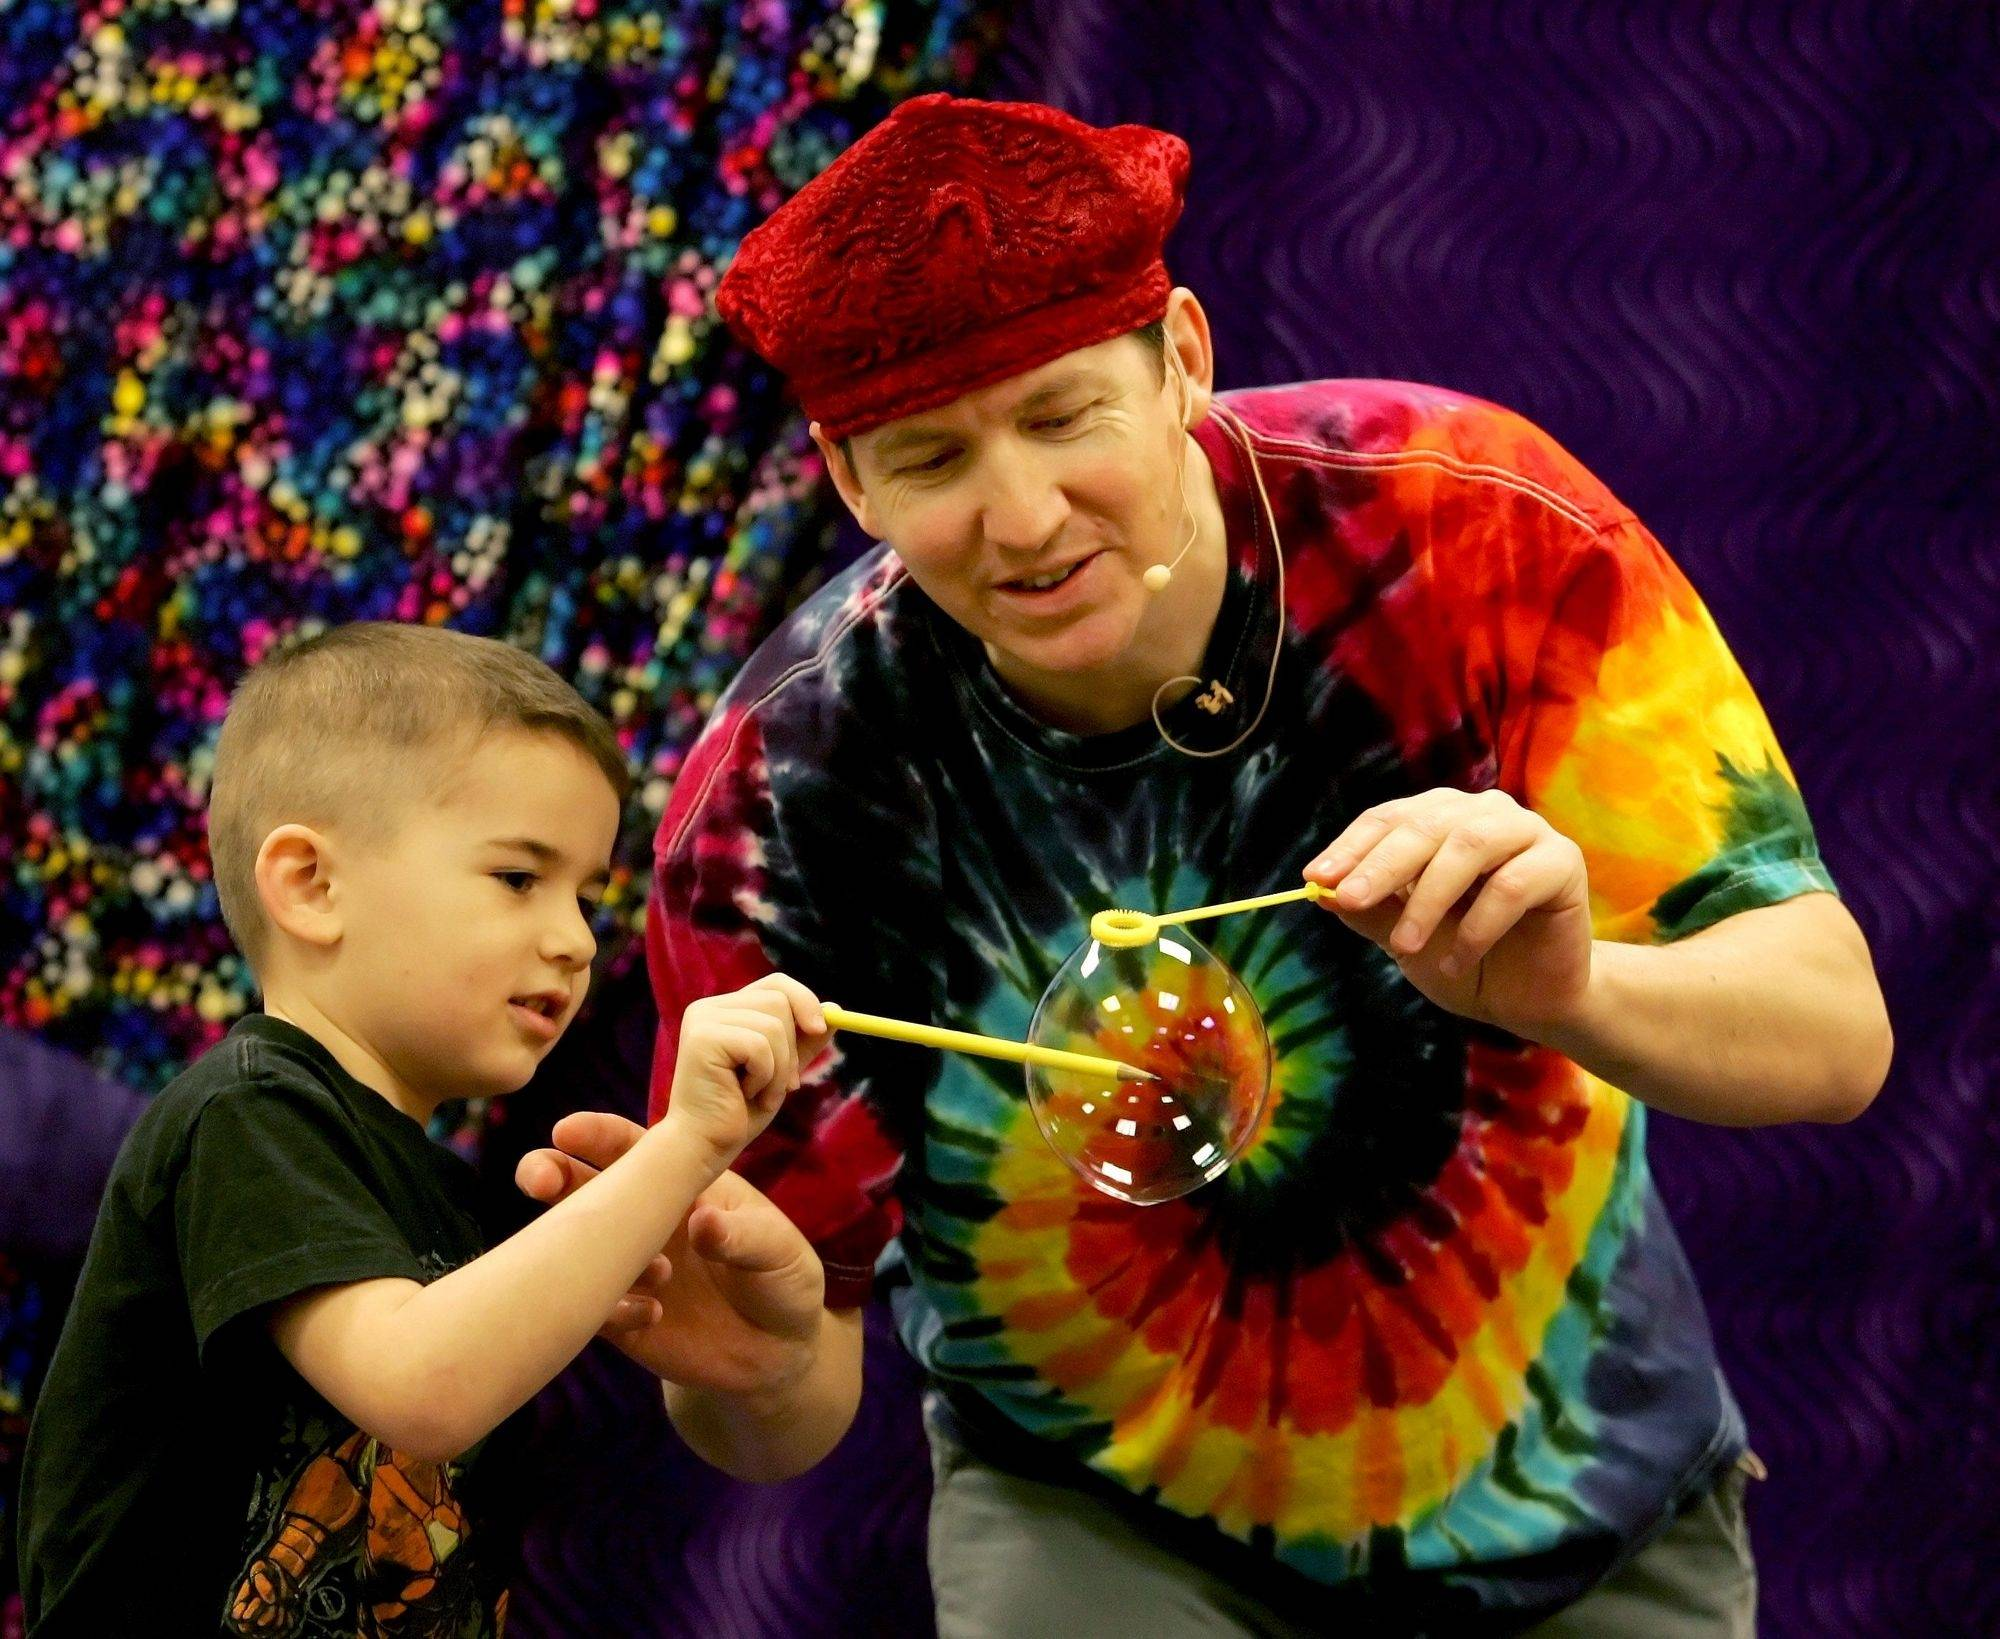 Geoff Akins and 4-year-old Lachlan Sorensen demonstrate how you can insert a pencil into a bubble without popping it - if you know what you're doing. Akins, known as The Bubble Man, recently performed at Prairie Children Preschool in Aurora.